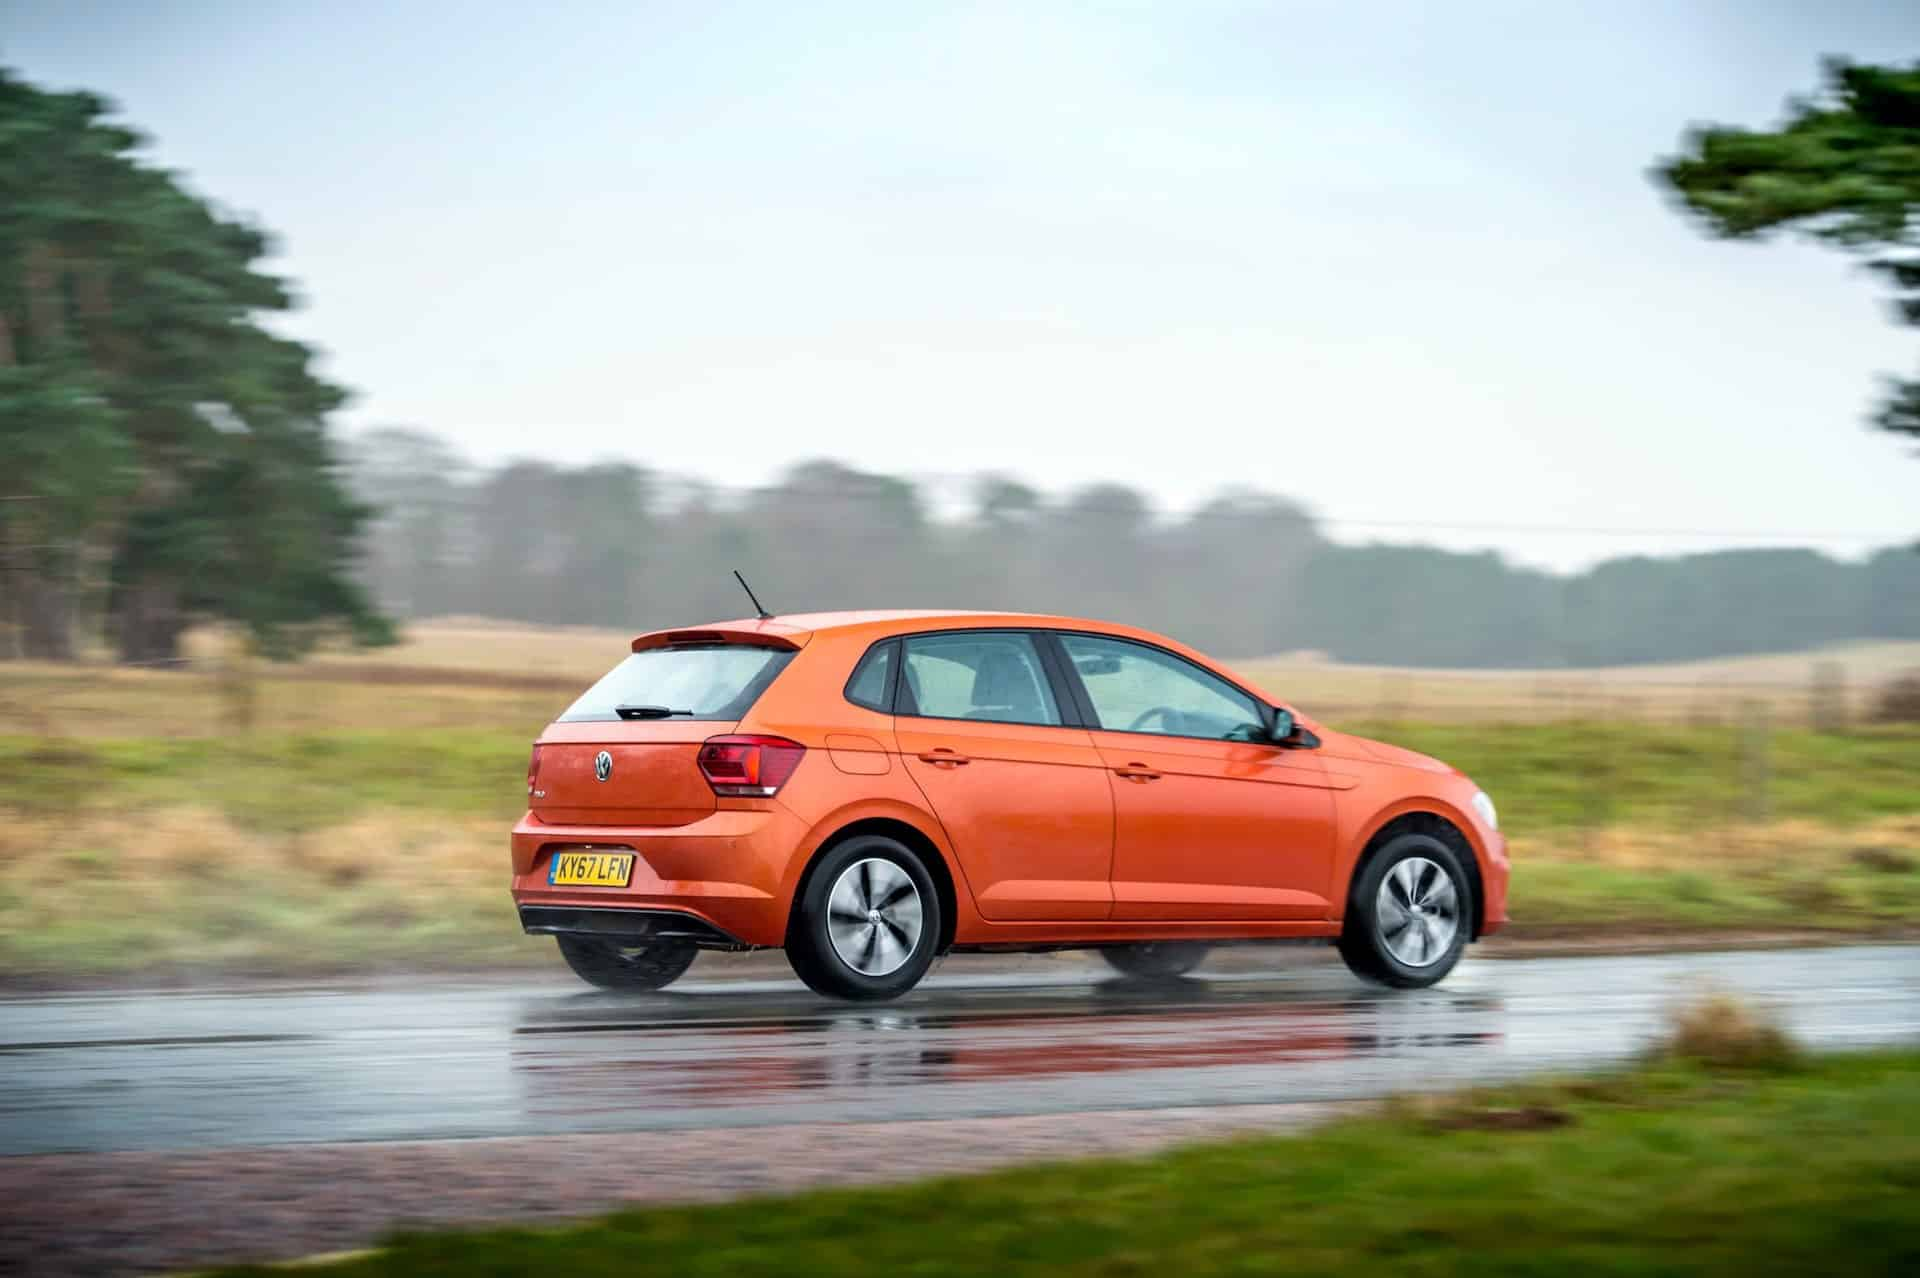 Volkswagen Polo road test 2018 (The Car Expert)